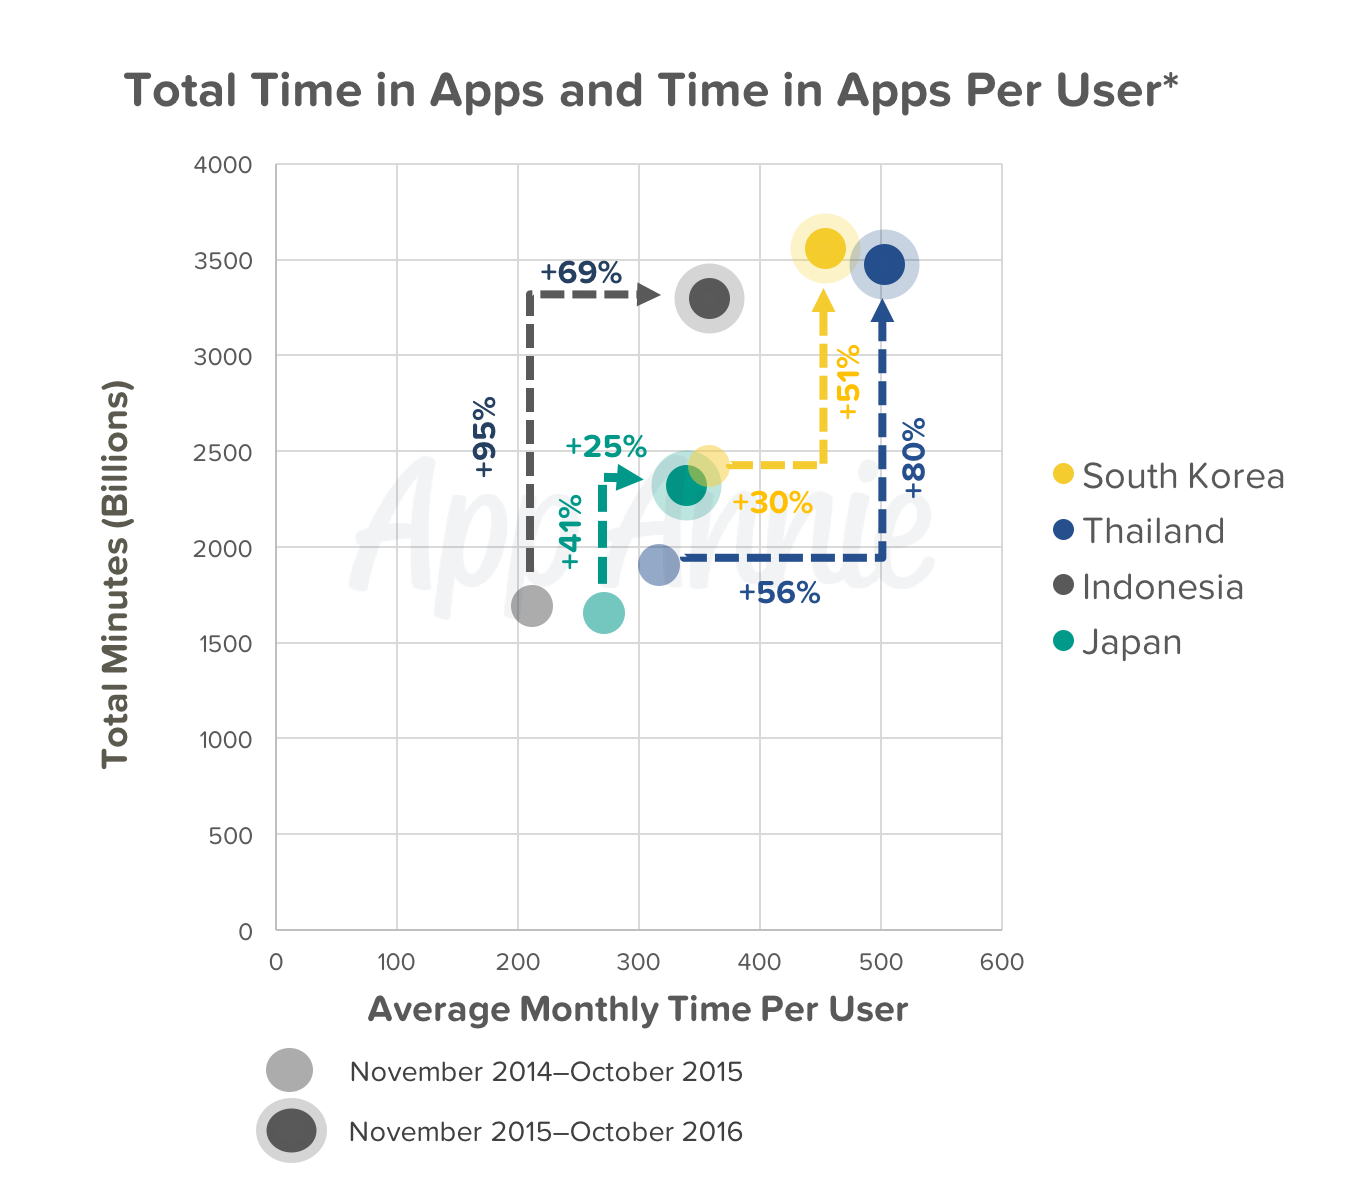 total-time-apps-per-user-minutes-asia